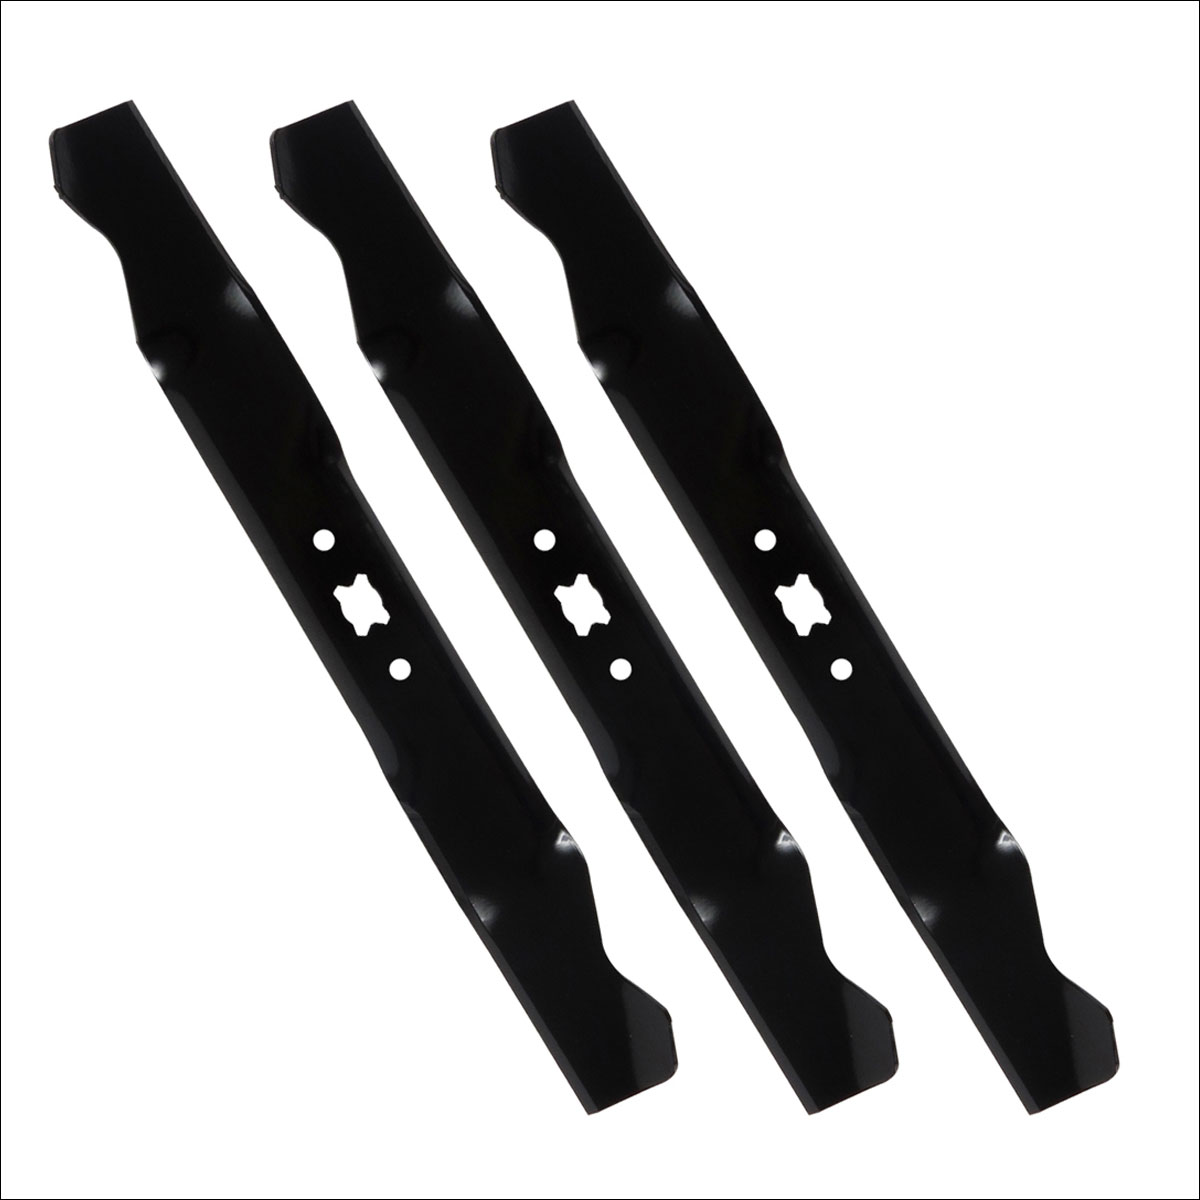 Mower Blades By Size : Pack cub cadet quot mulch blades for push lawn